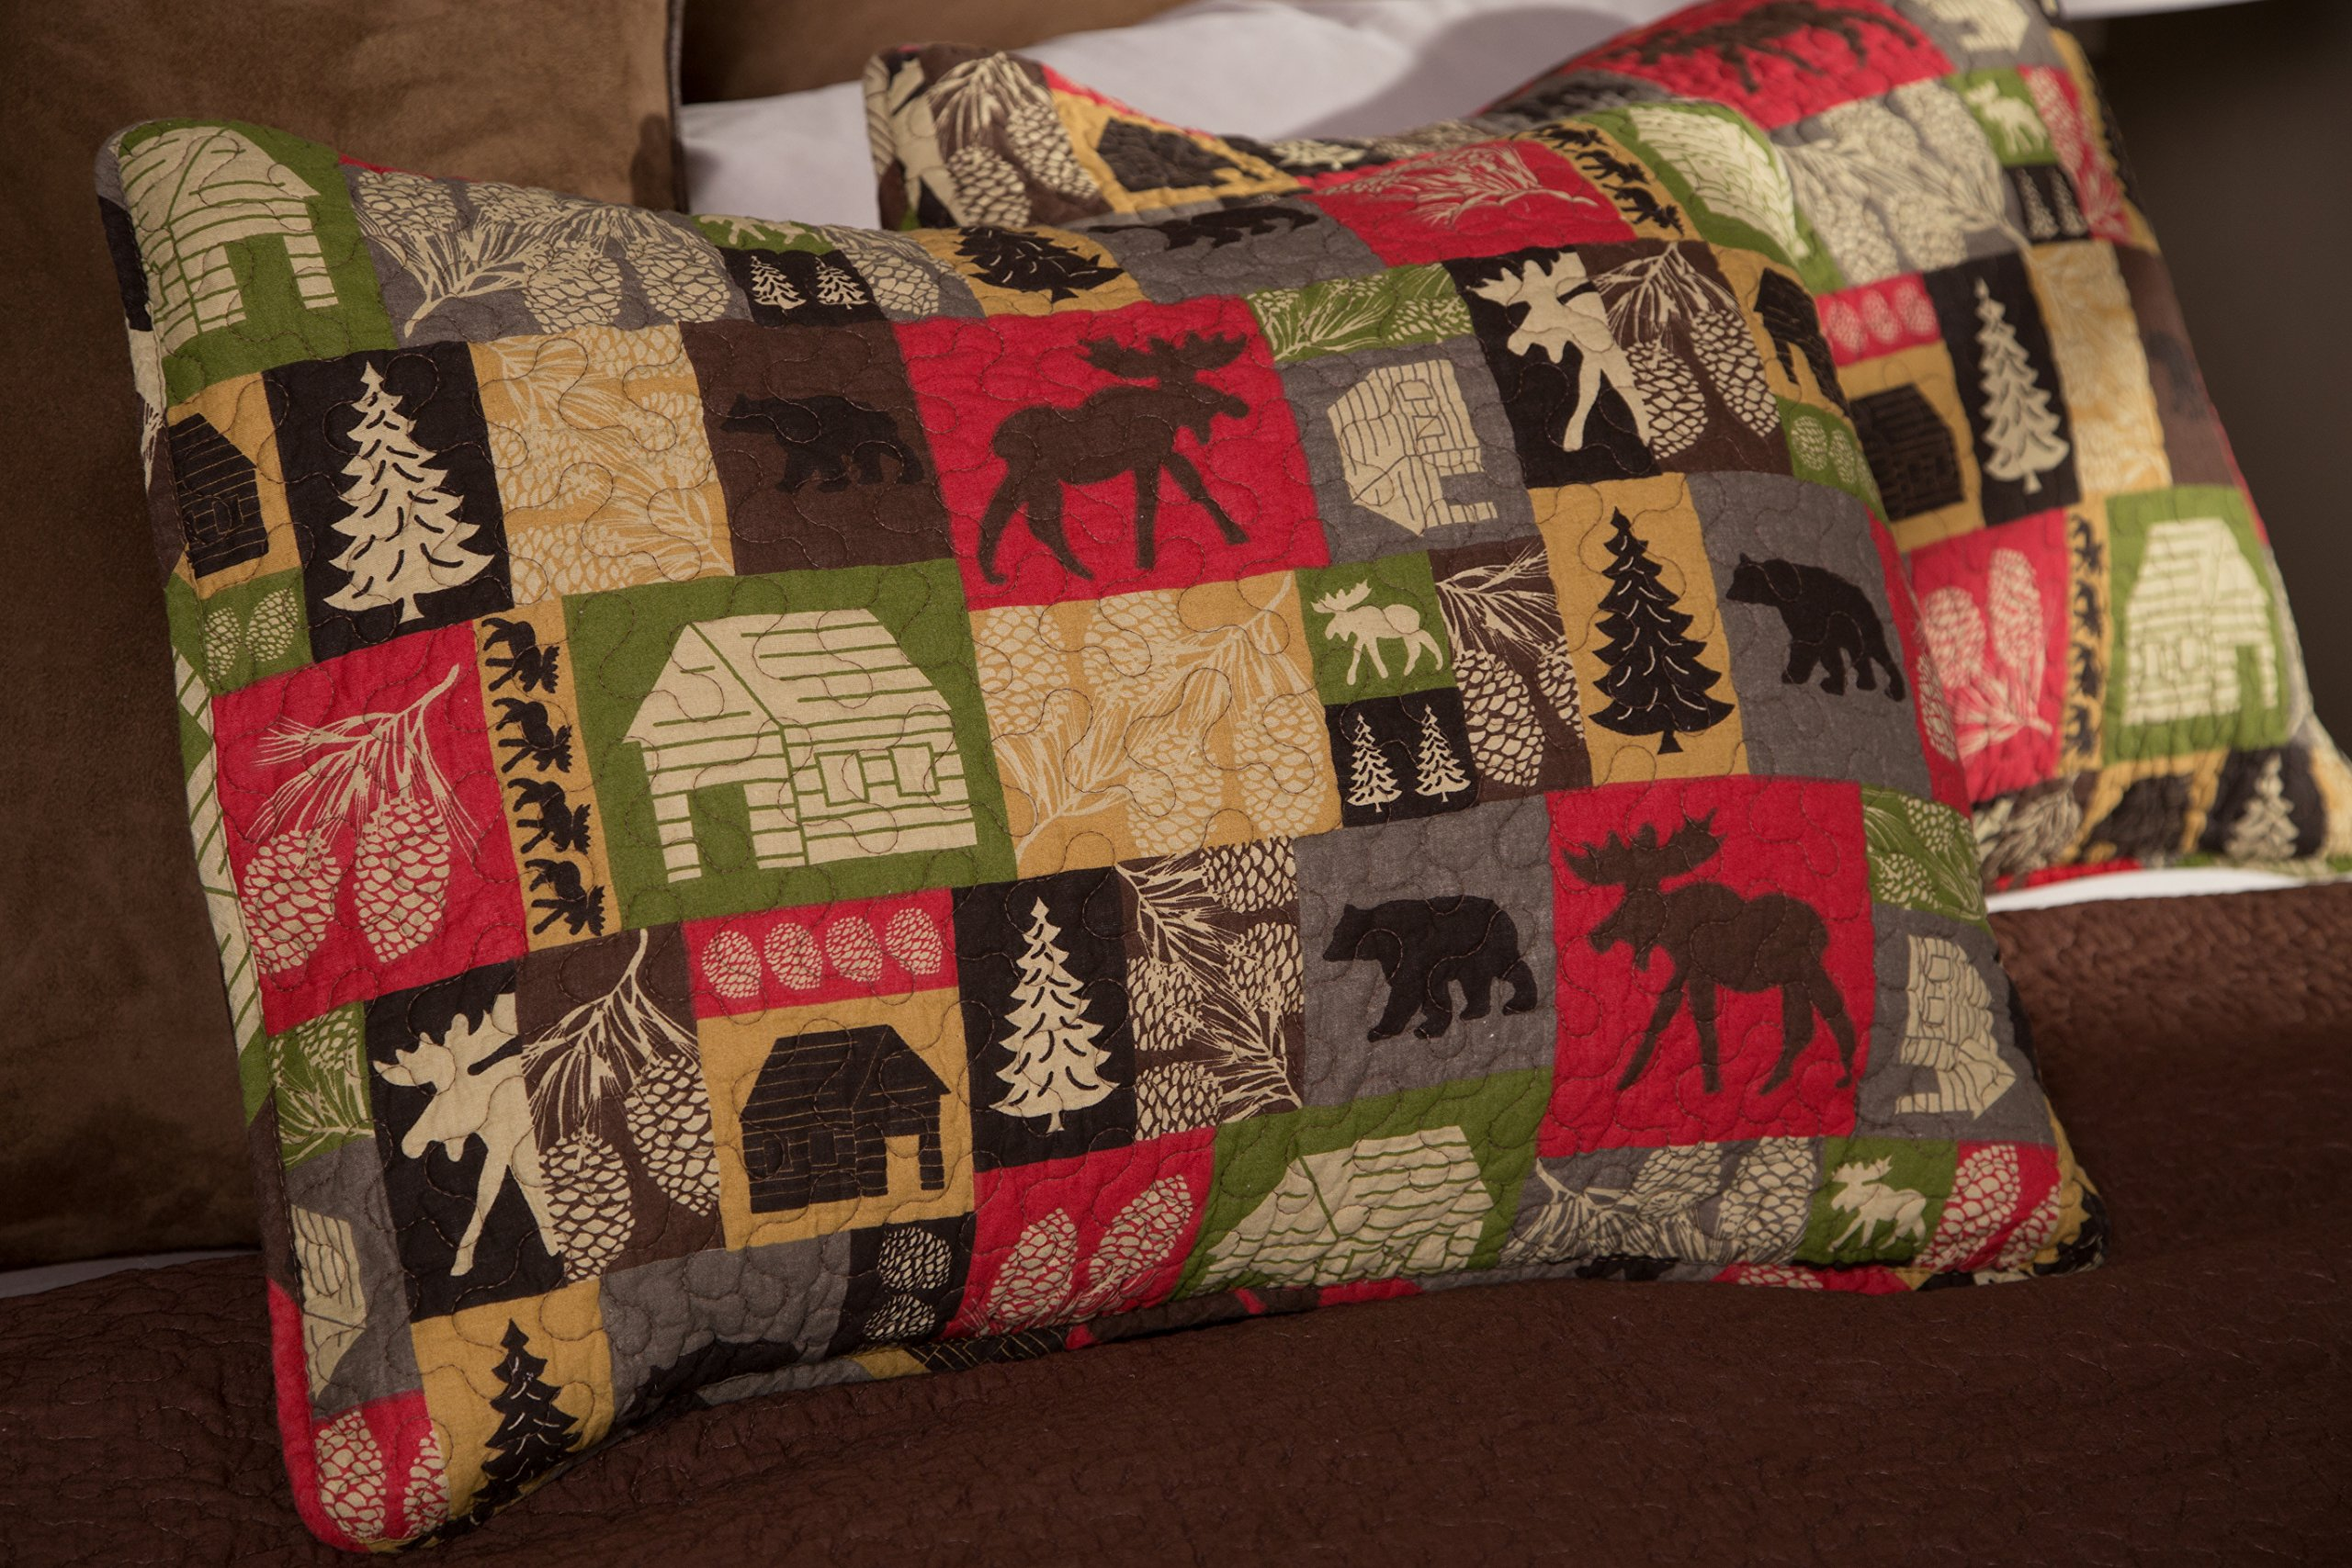 Carstens Cabin in The Woods 5 Piece Cotton Printed Quilt Bedding Set, Queen by Carstens (Image #4)